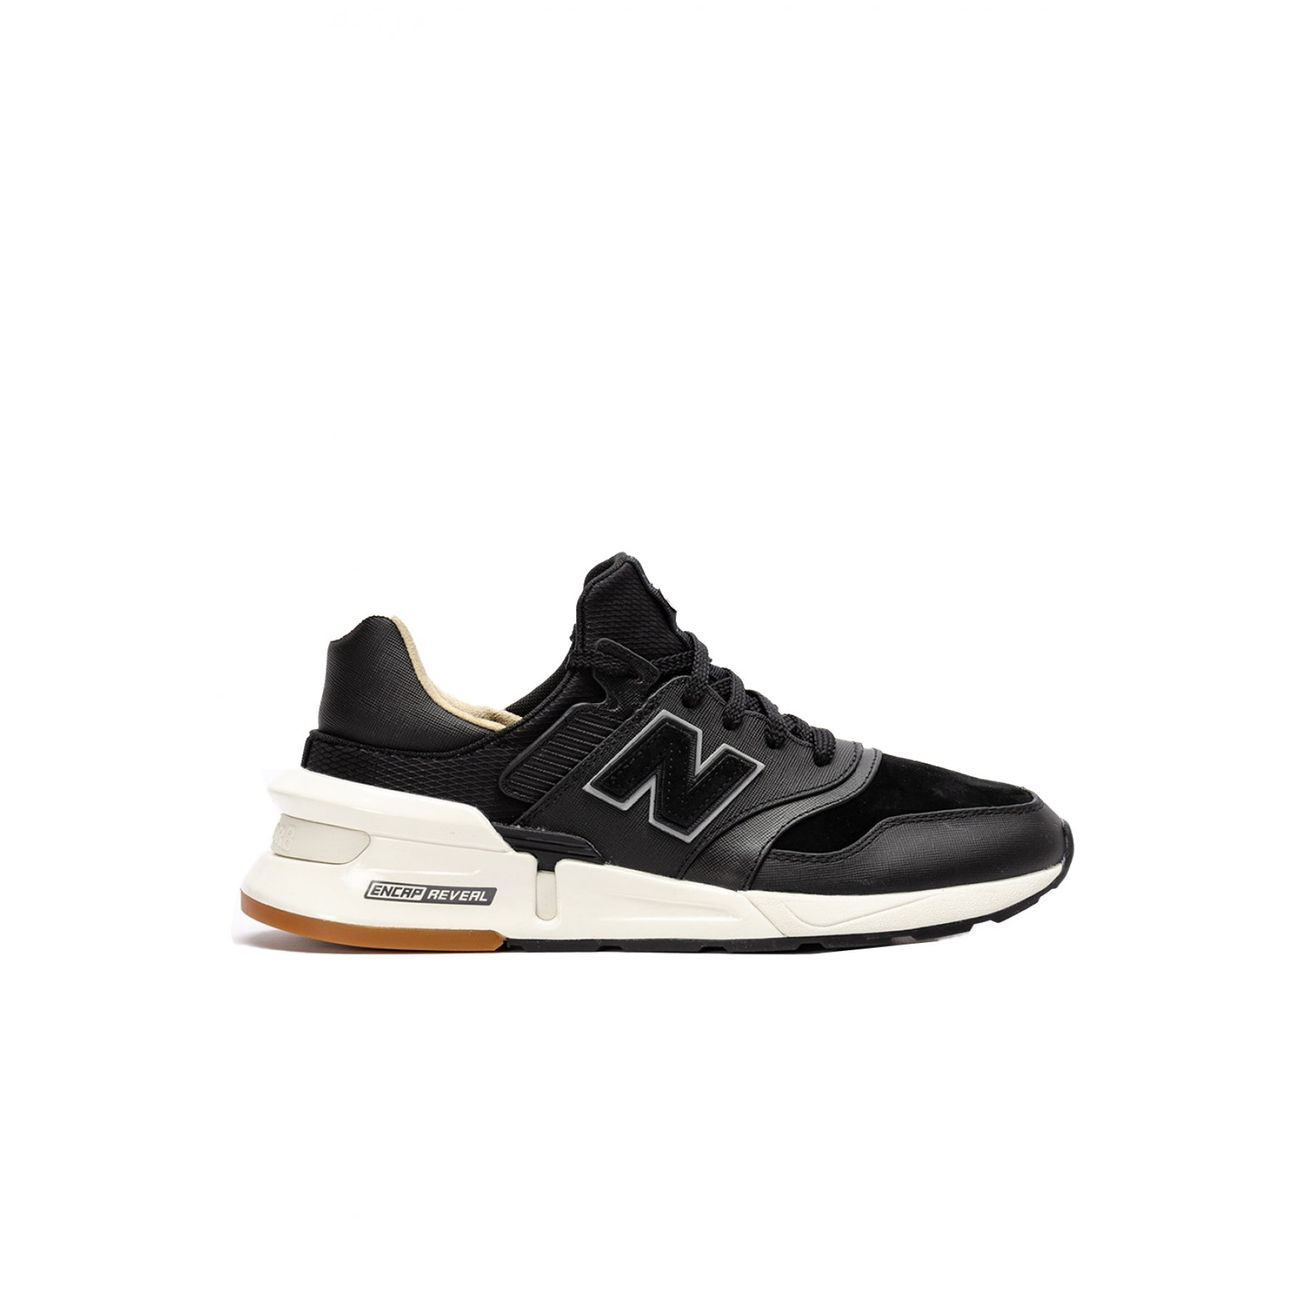 homme NEW BALANCE Sneakers chausson cuir MS997RB - New balance - Homme